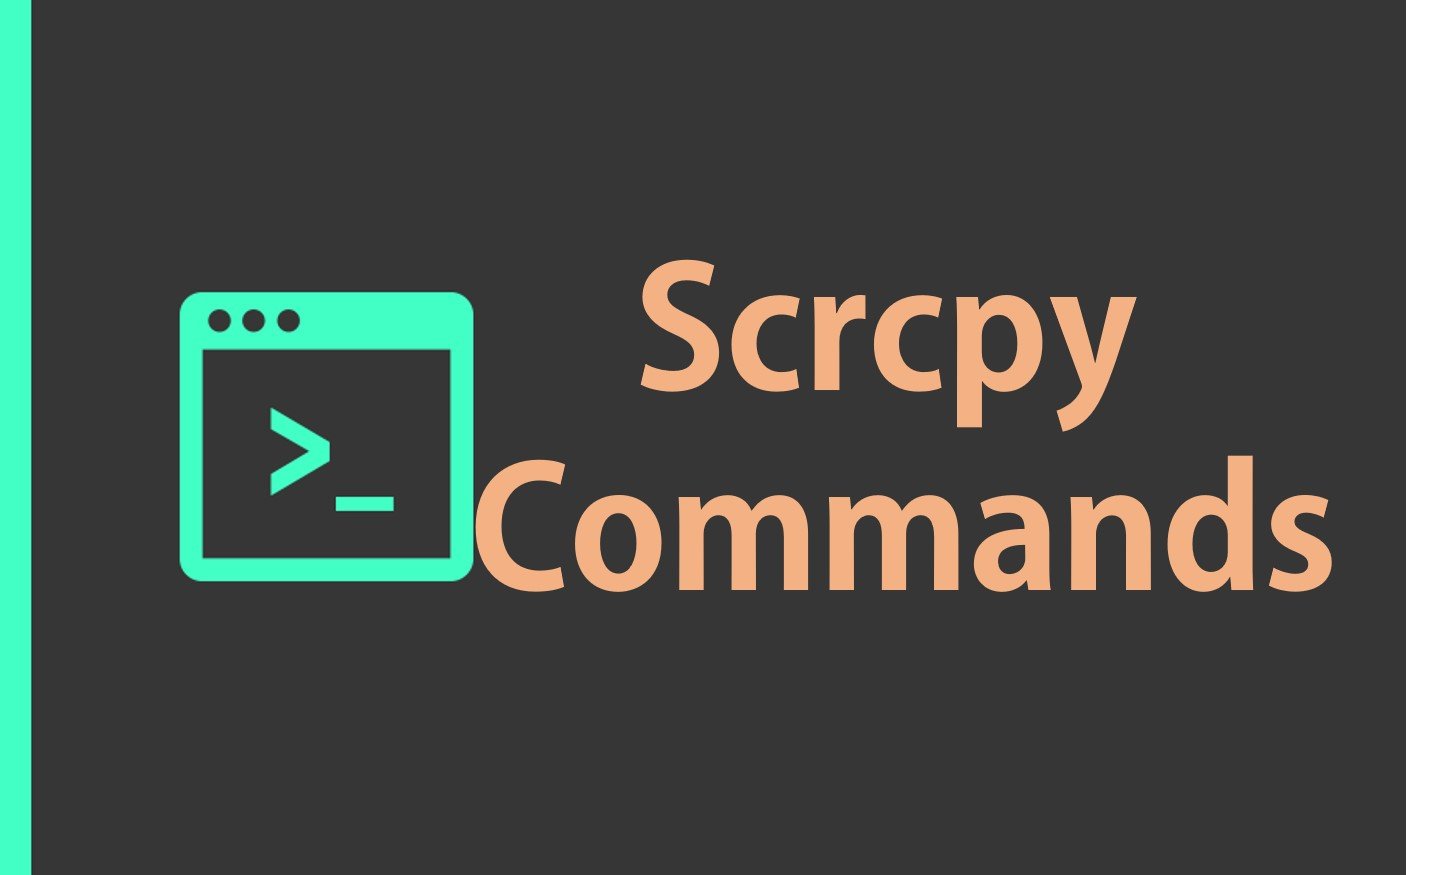 Scrcpy commands